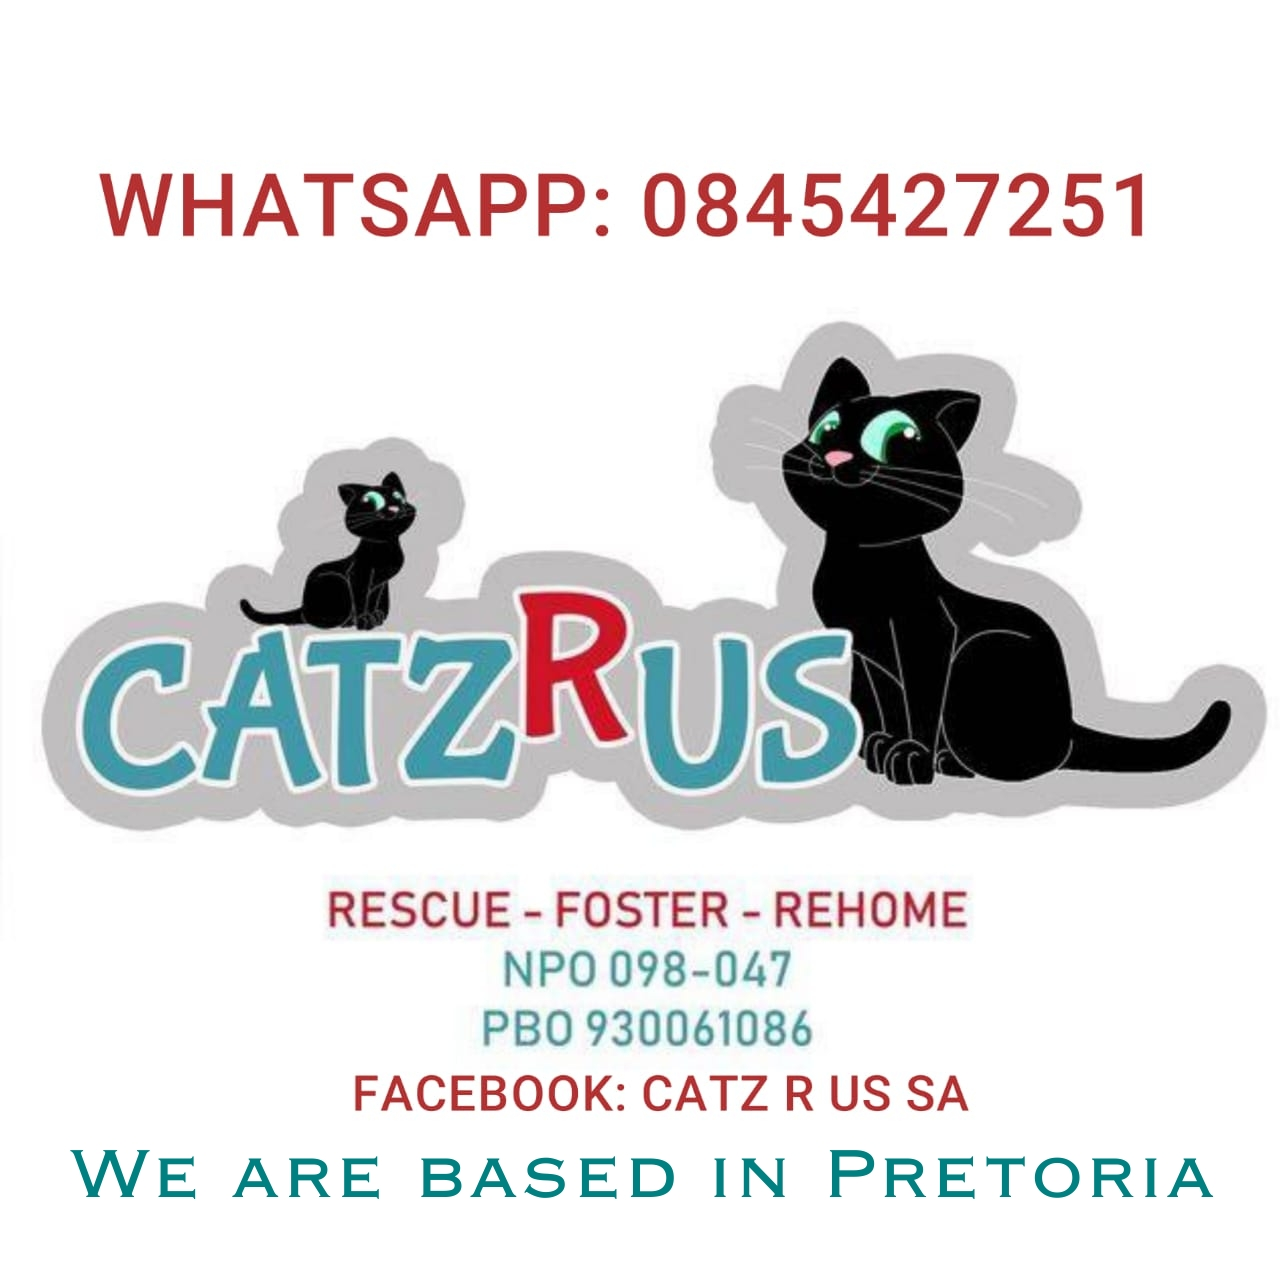 Cat Lovers, we need volunteers to foster needy cats and kittens. CatzRus is a registered Rescue Organisation.